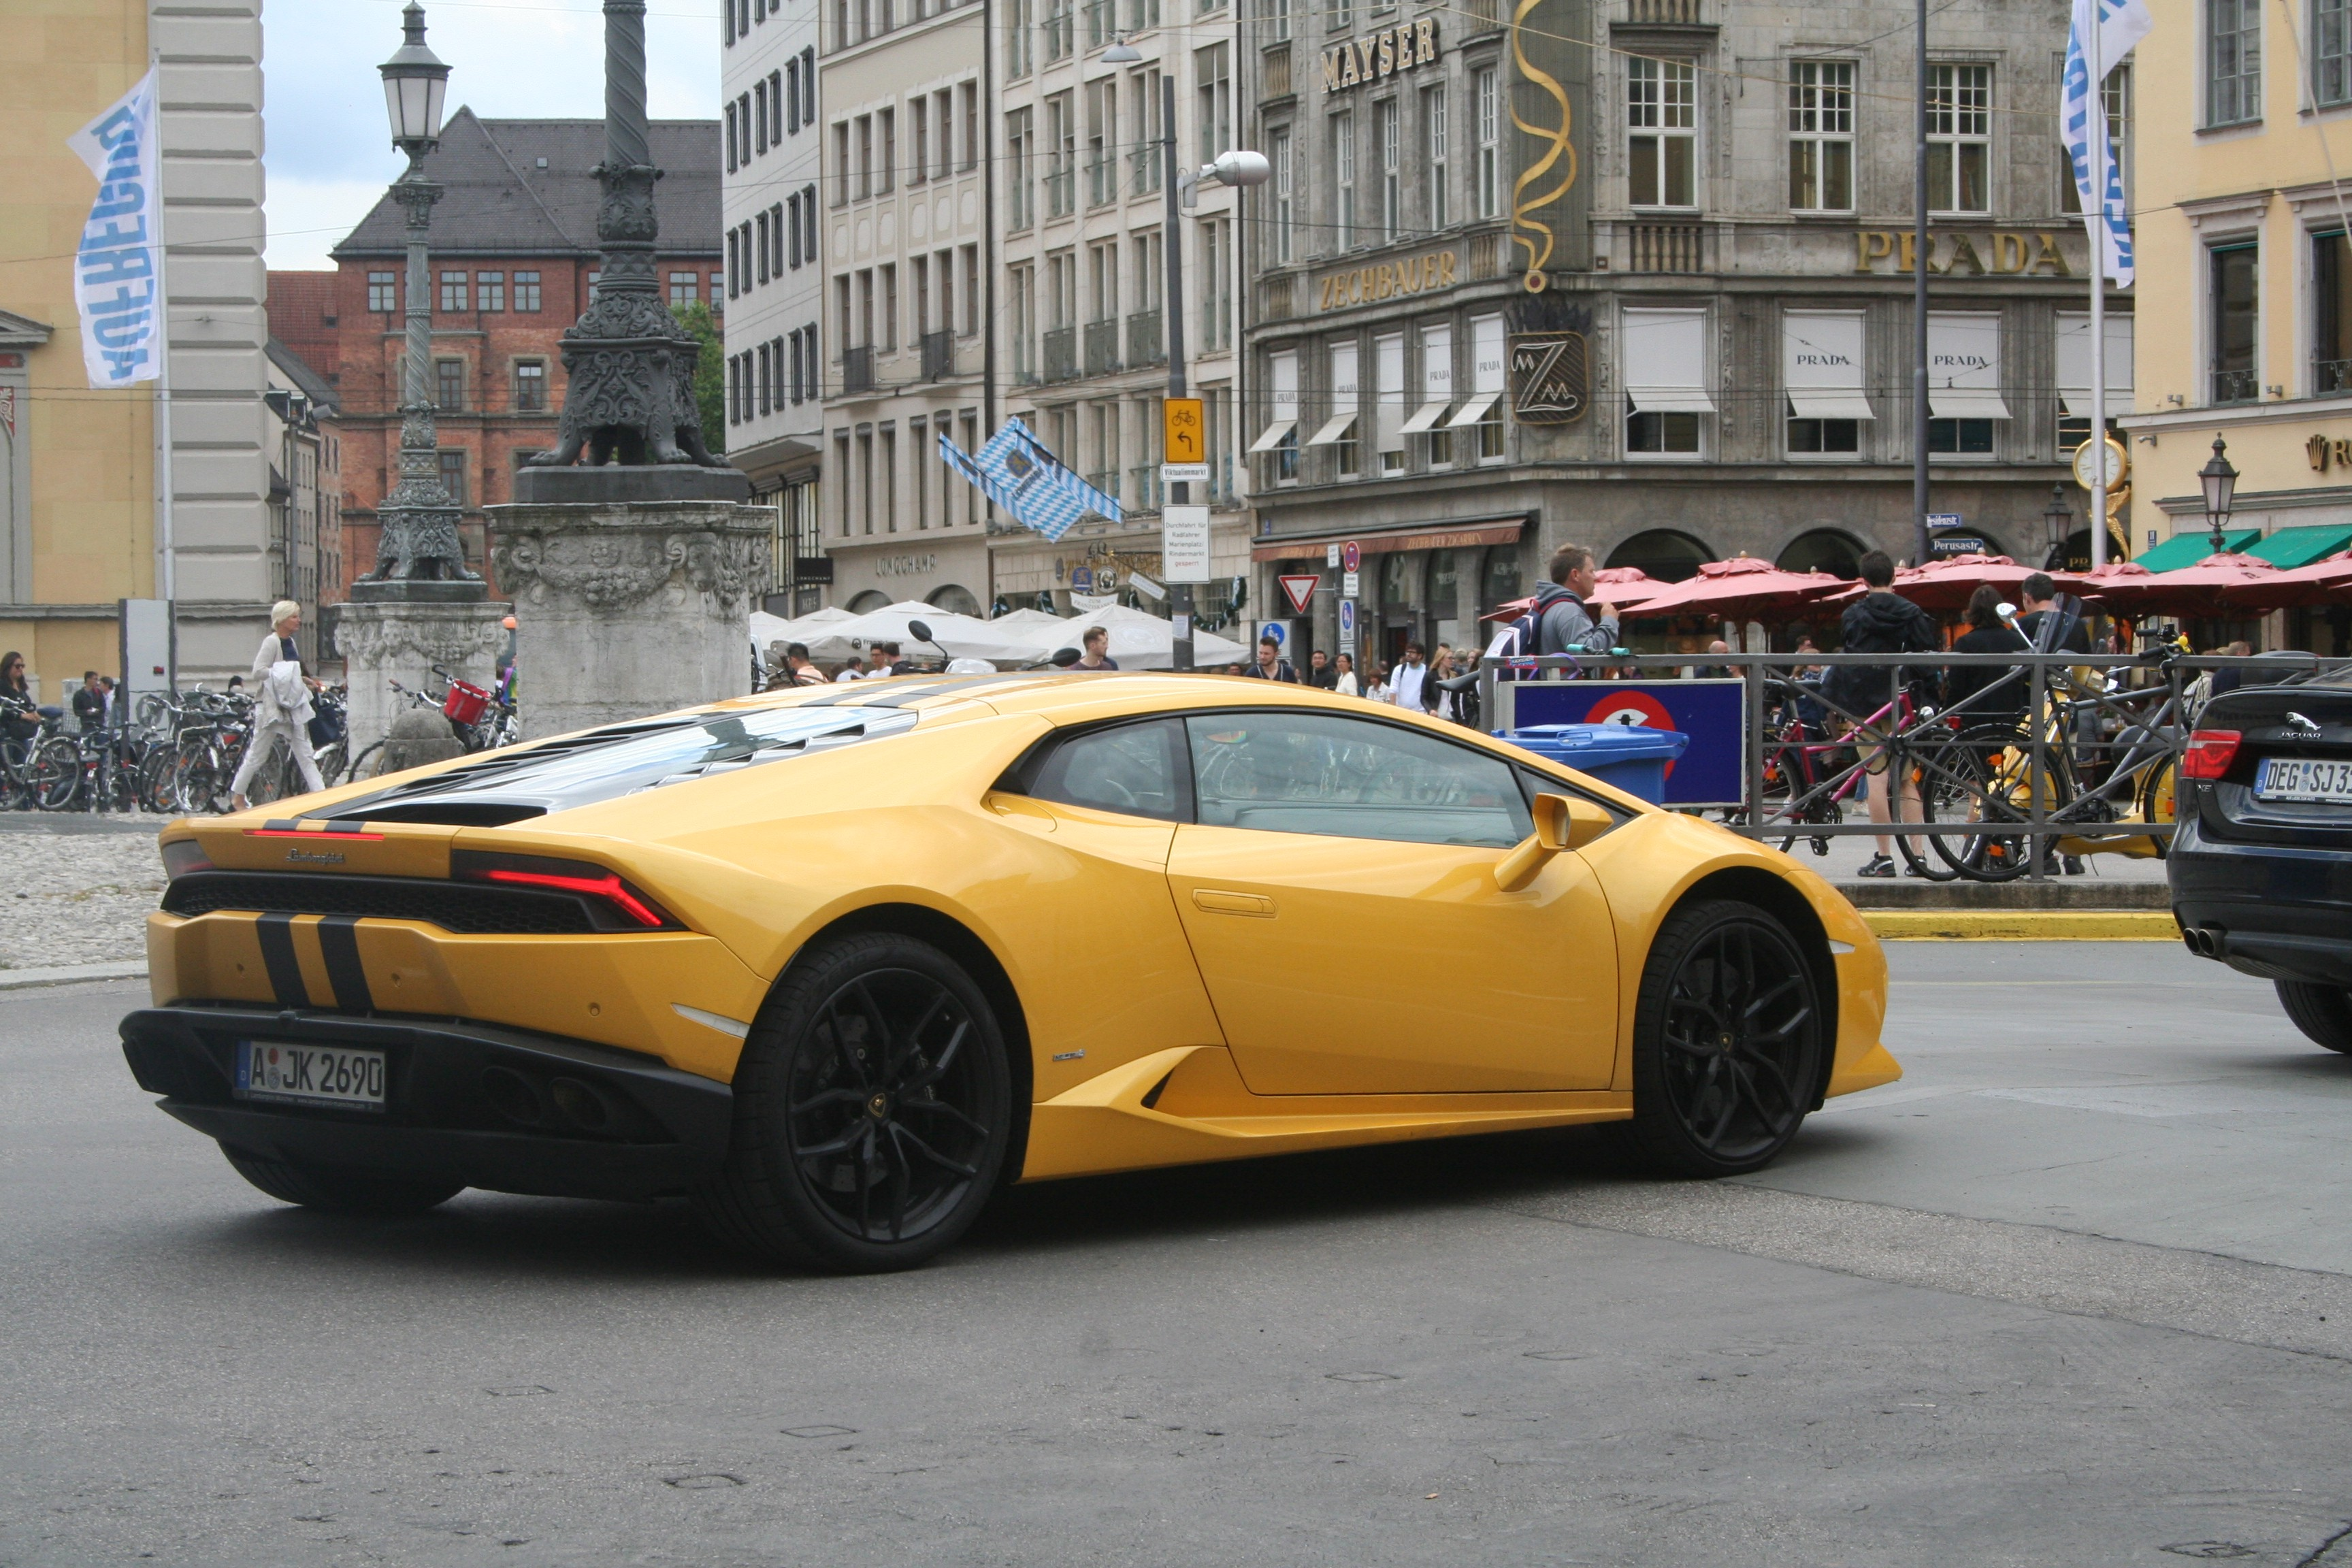 Lamborghini Huracán in yellow